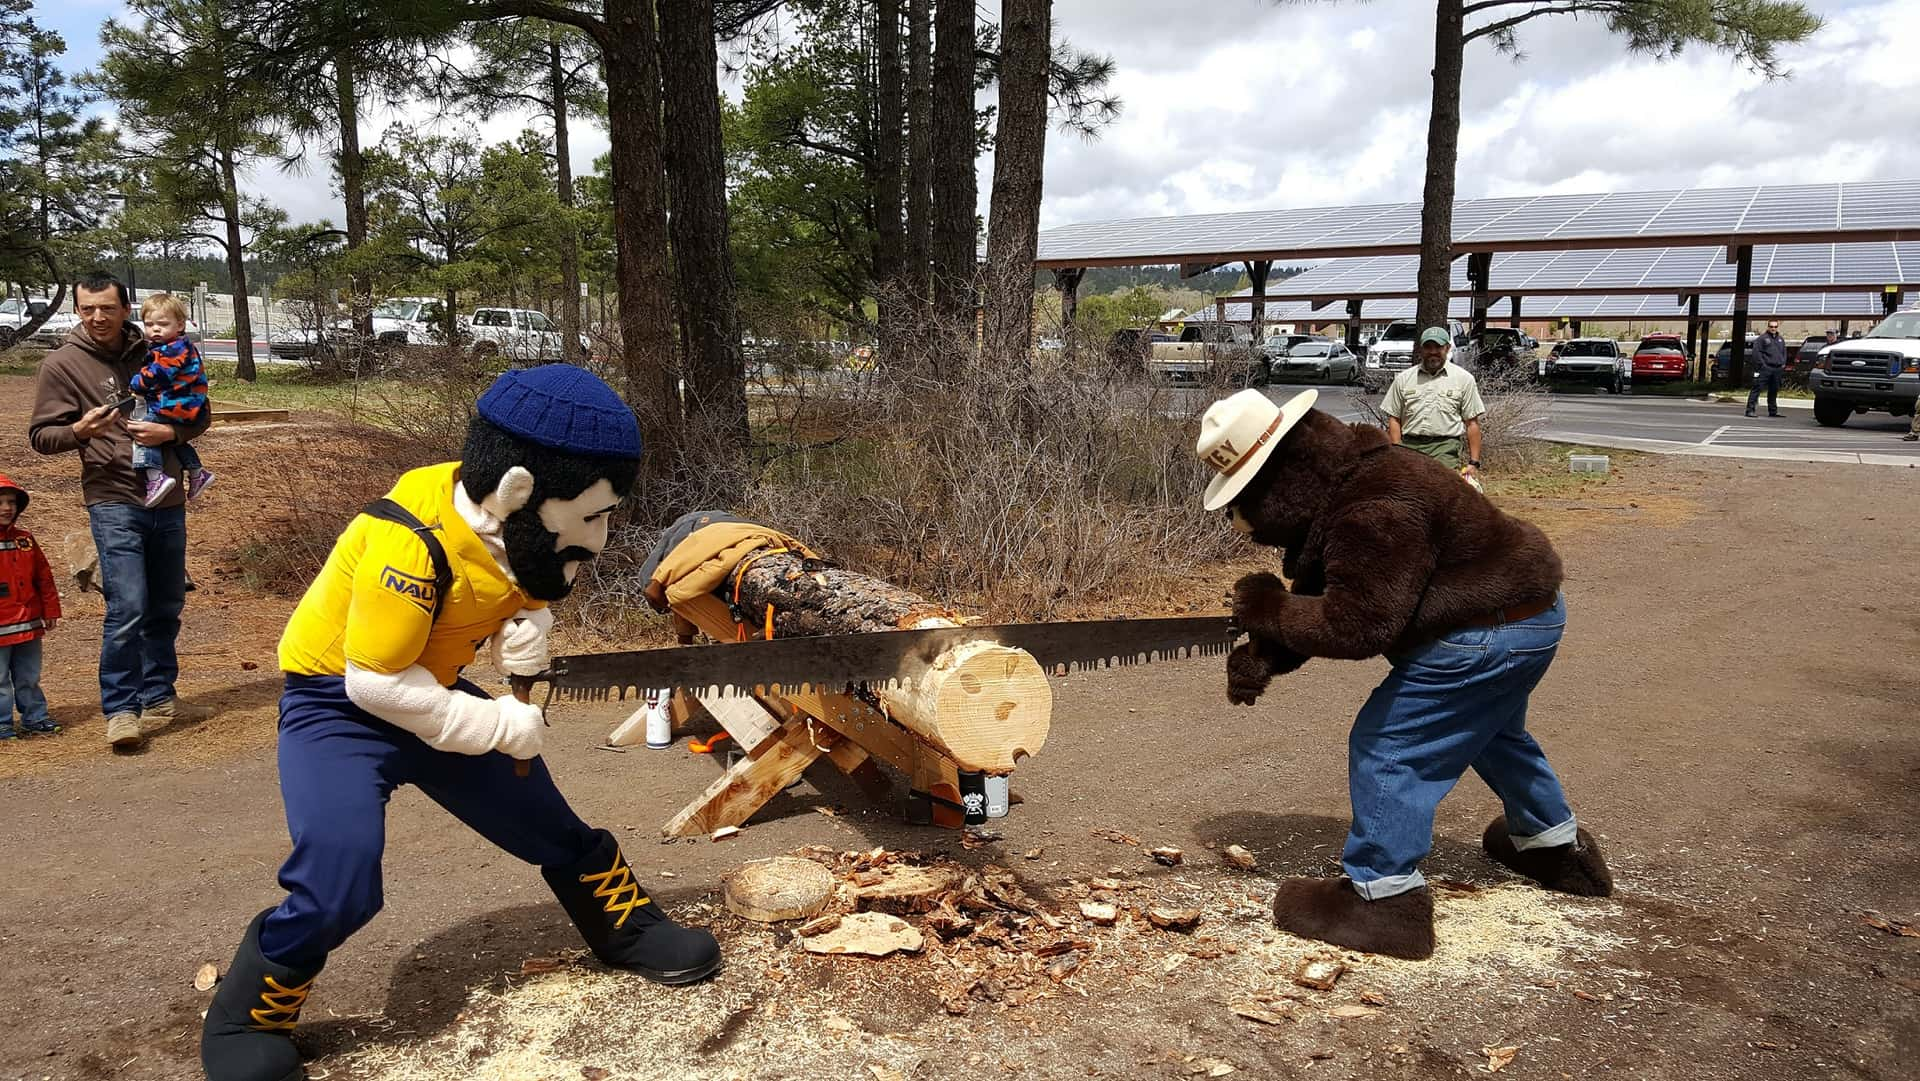 Smokey Bear and Louie the Lumberjack using a crosscut saw to saw a log